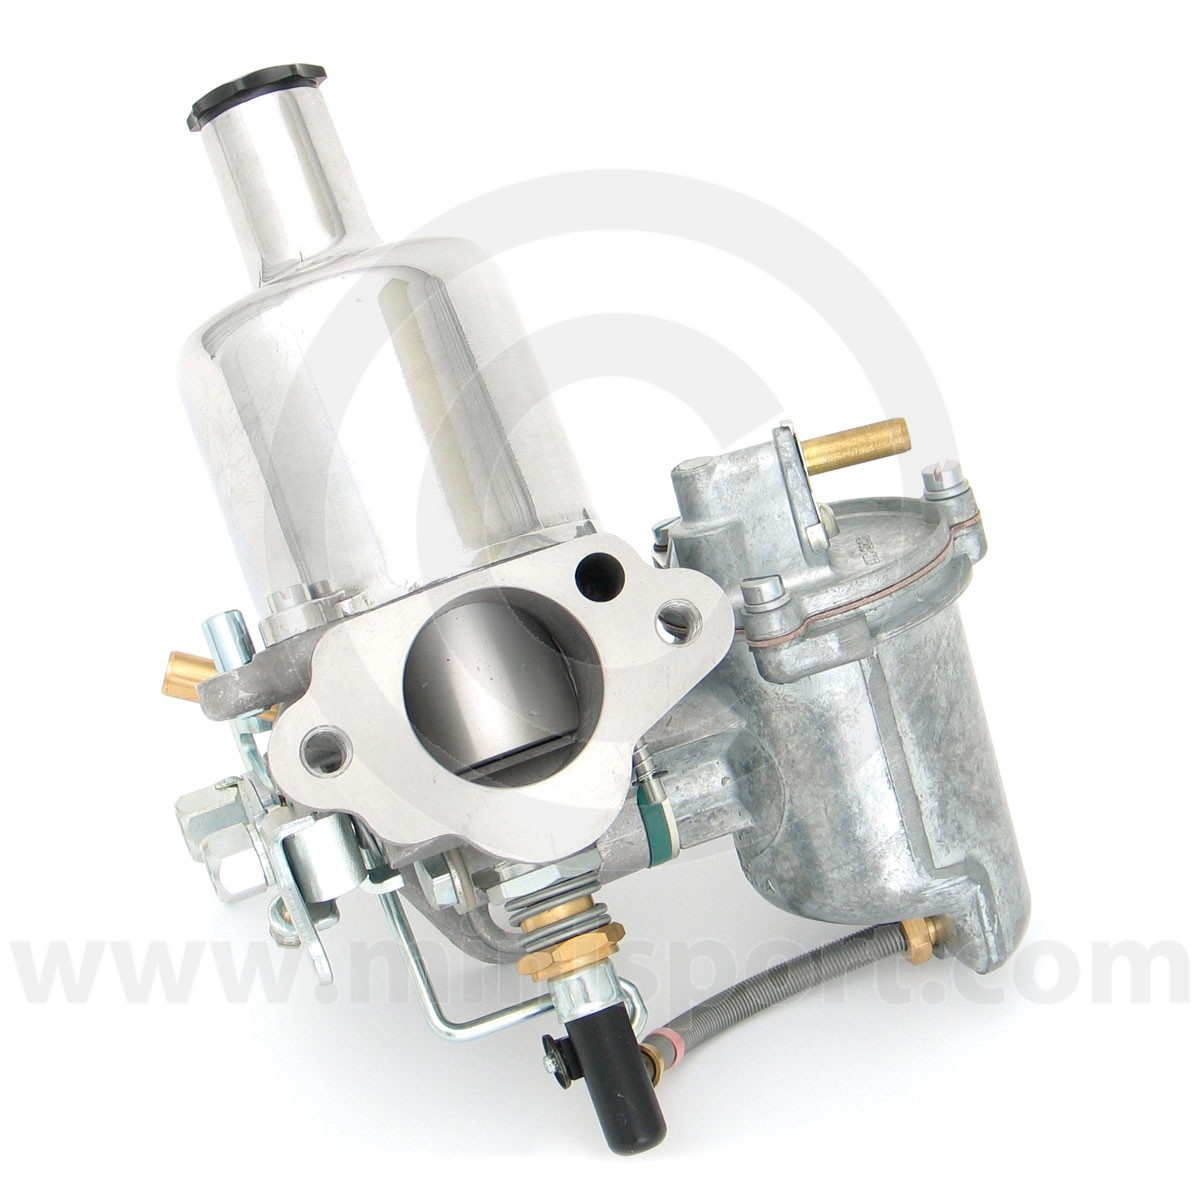 Ms2900 Mini Hs2 Su Carb Carburettor Sport 1275 Gt With Alternator And Rocker Type Switches Single 125 Left Hand Inter Connect